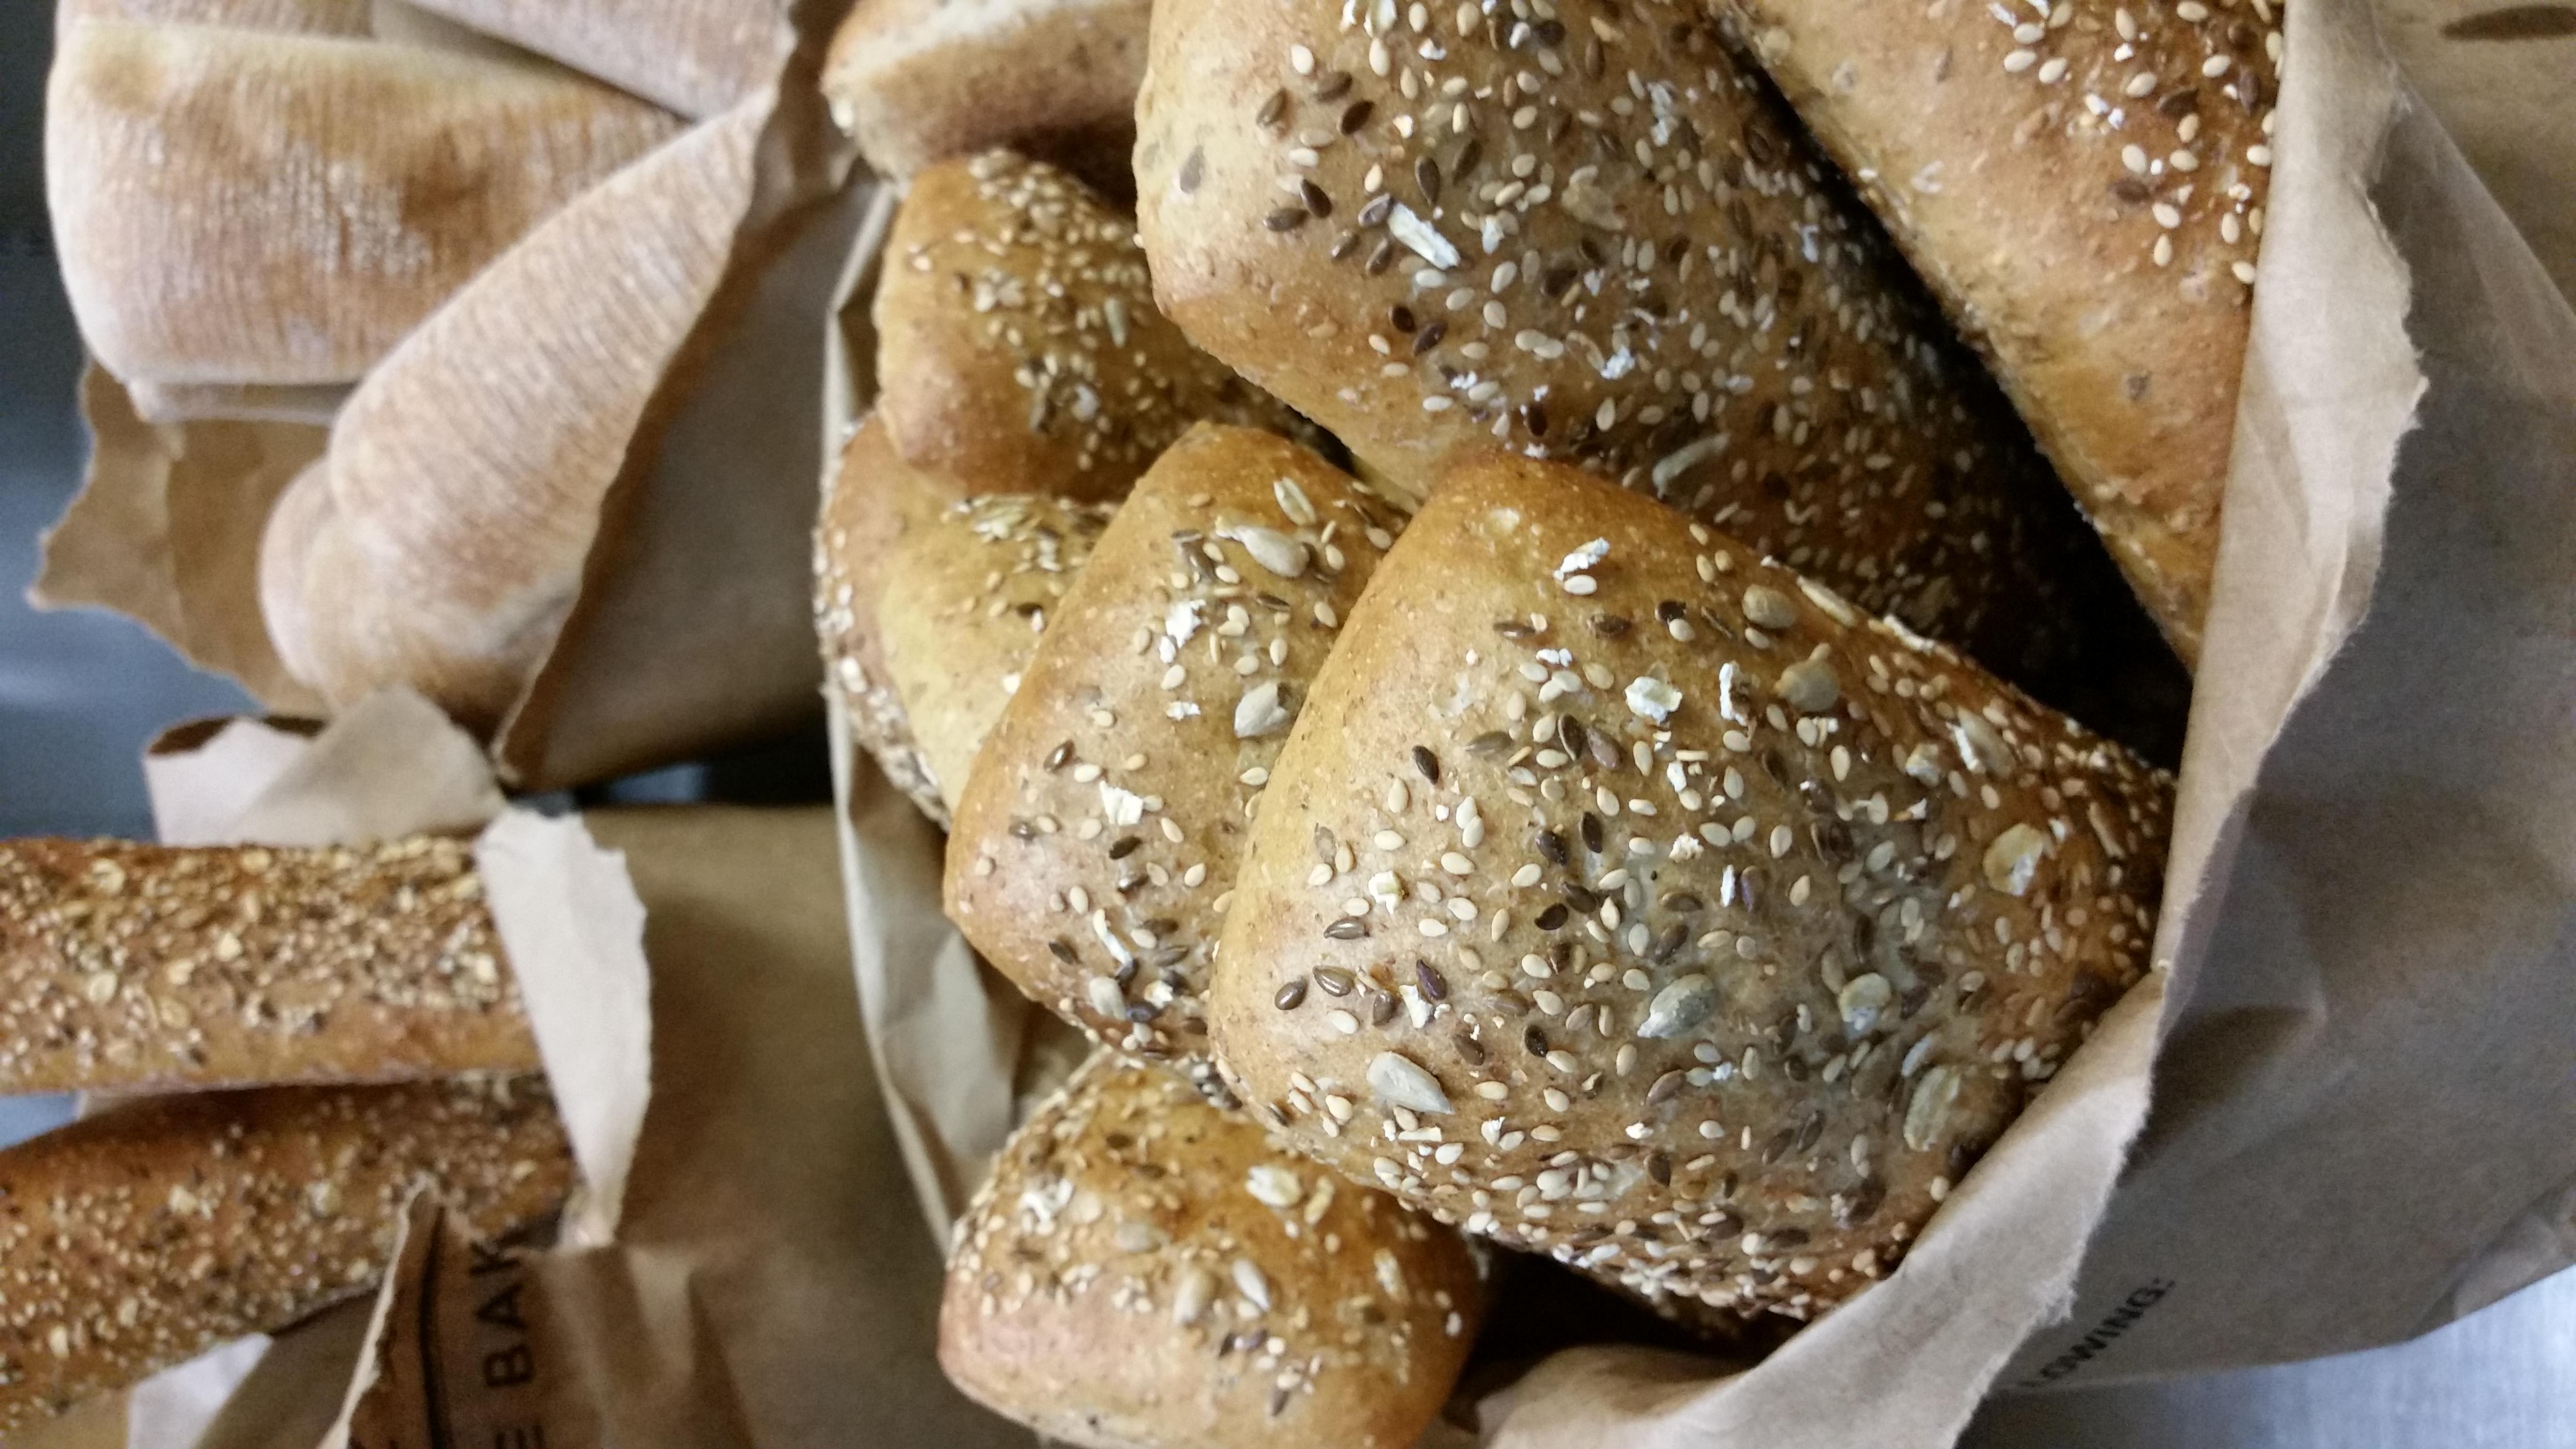 Whole Wheat Multigrain Rolls at South Street Creamery Cafe